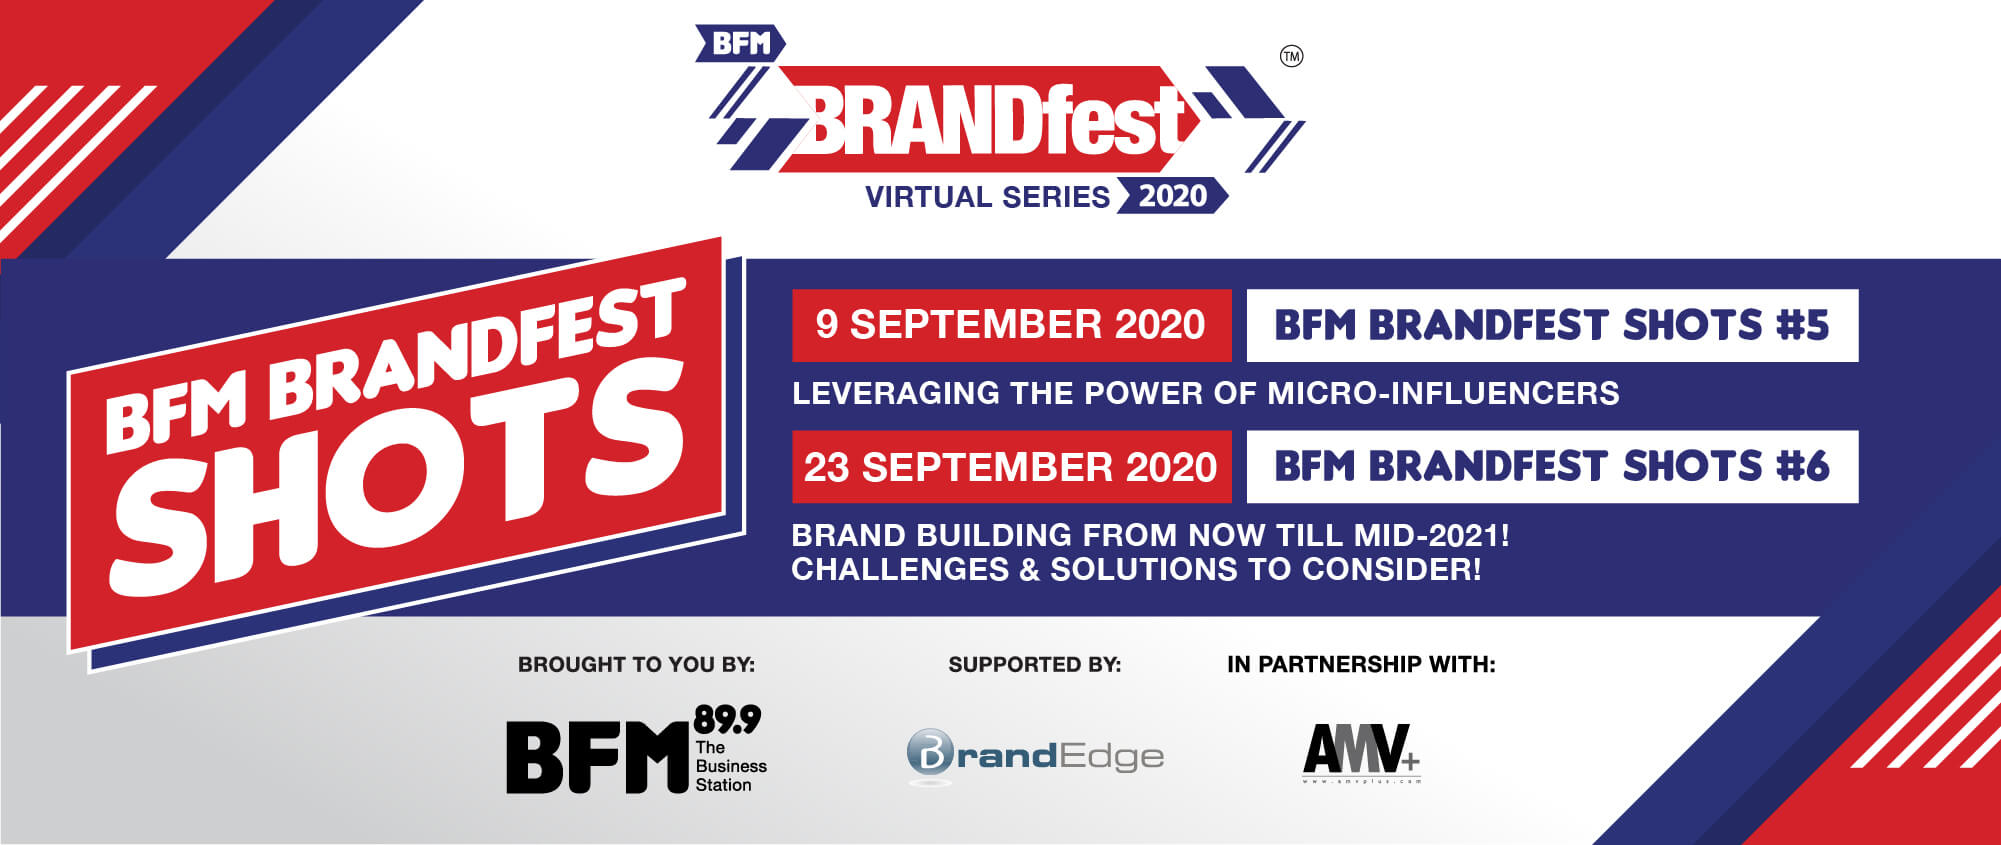 BFM Brandfest 2020 Shots 5 and 6